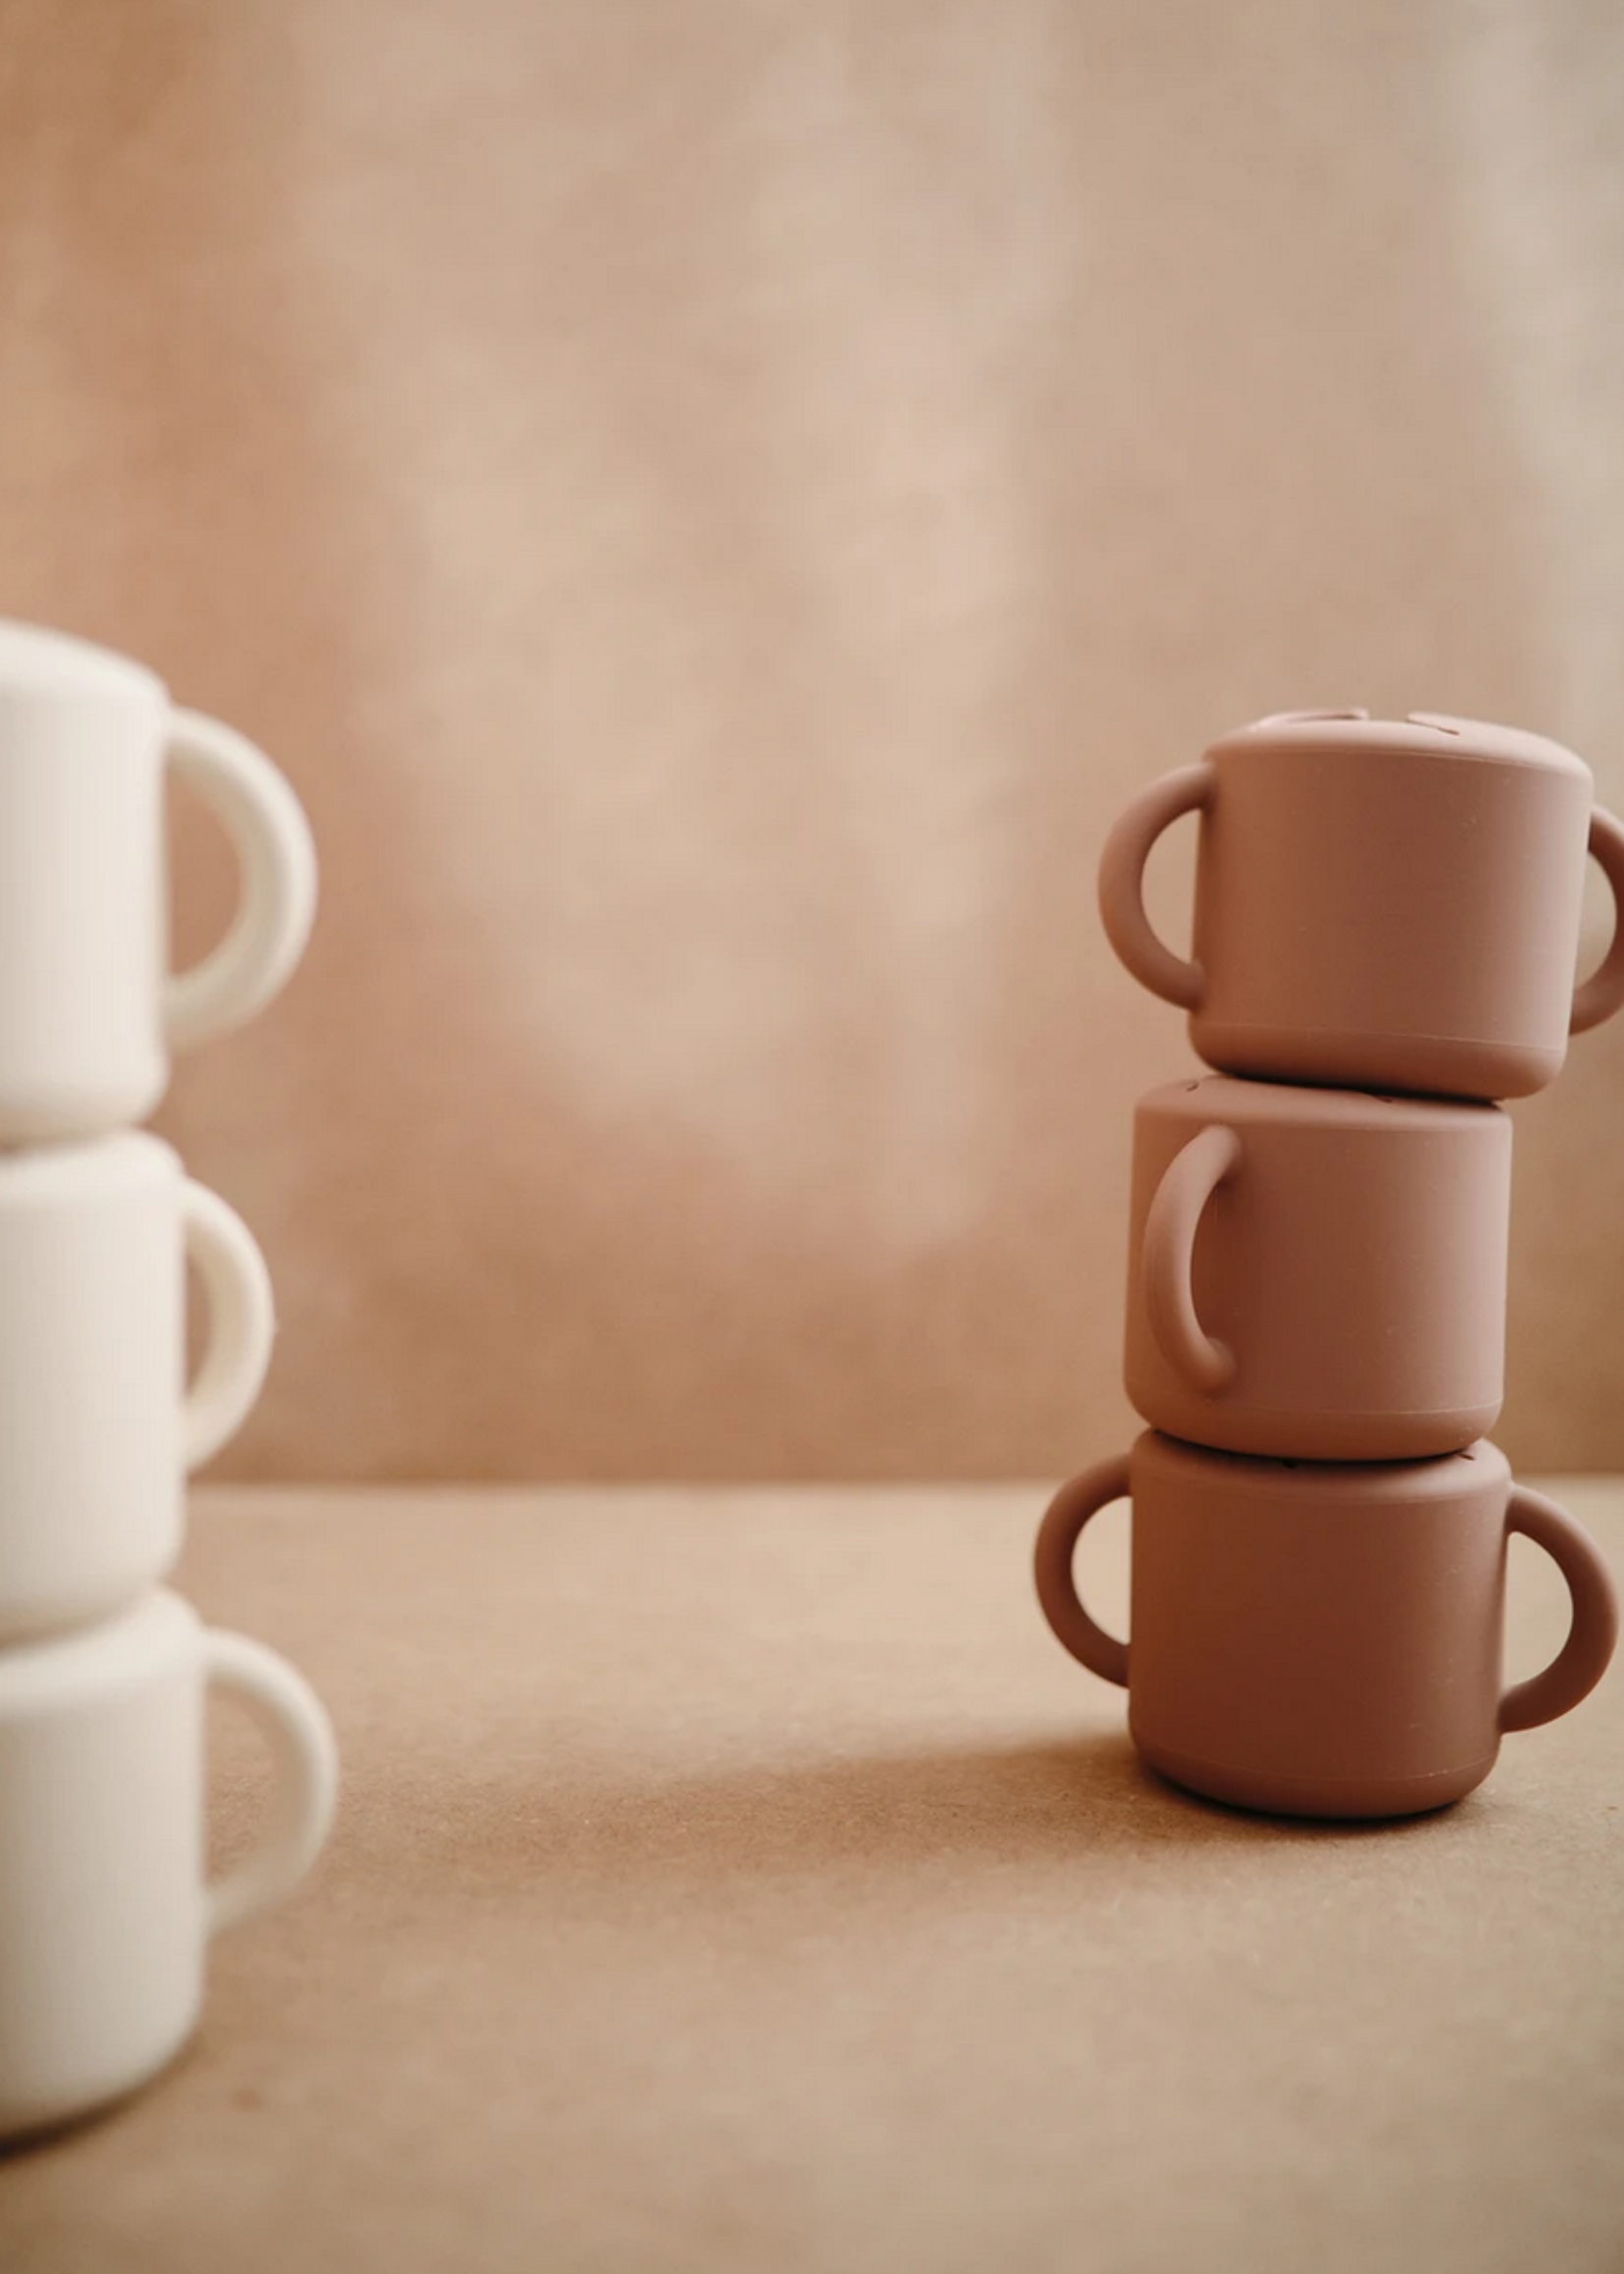 Elitaire Petite Snack Cup in Cloudy Mauve